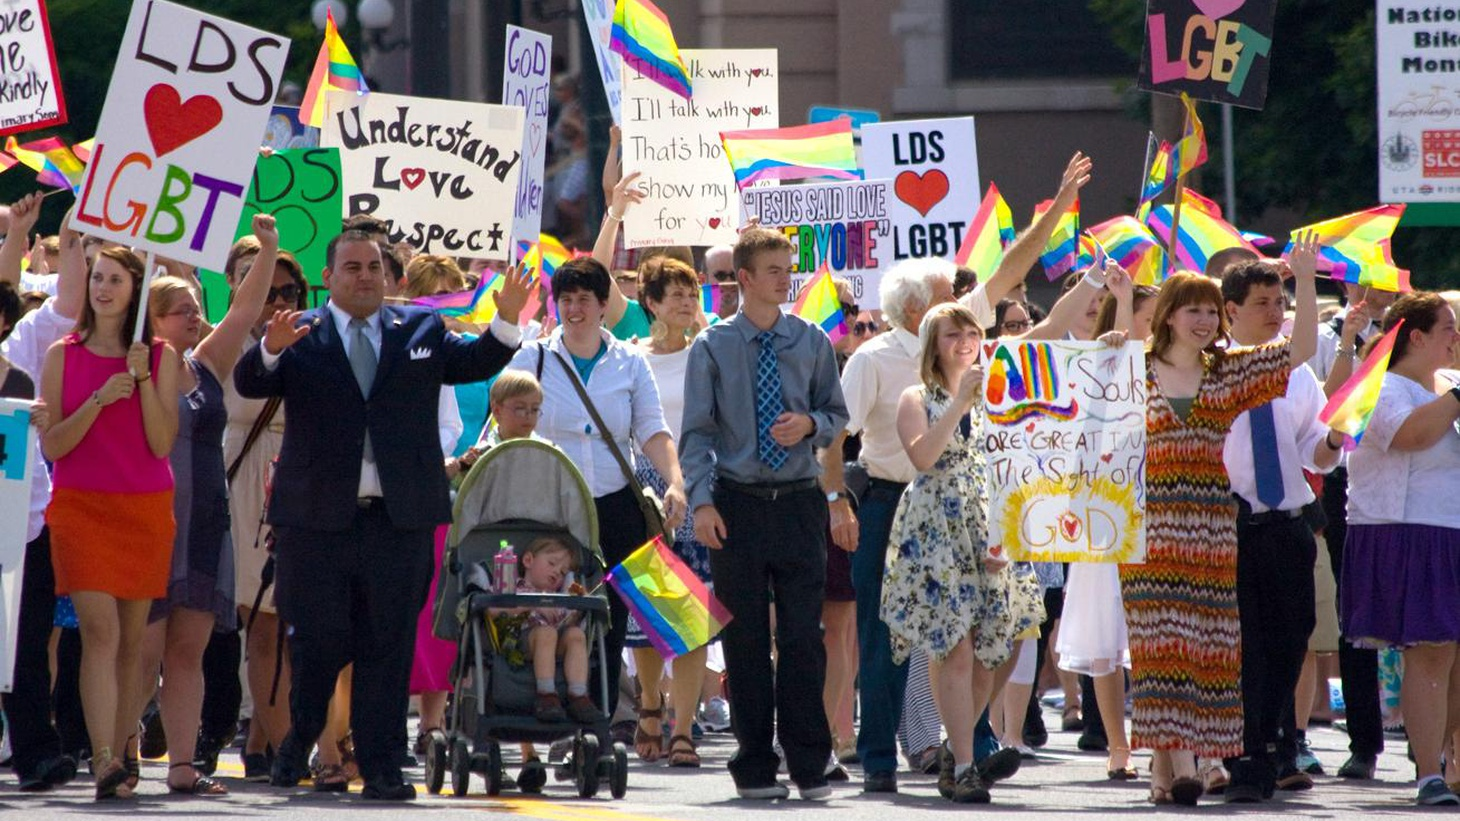 Utah could become the 18th state to permit same-sex marriage, with court cases in 17 other states. Will 2013 be the tipping point for same-sex marriage in America?